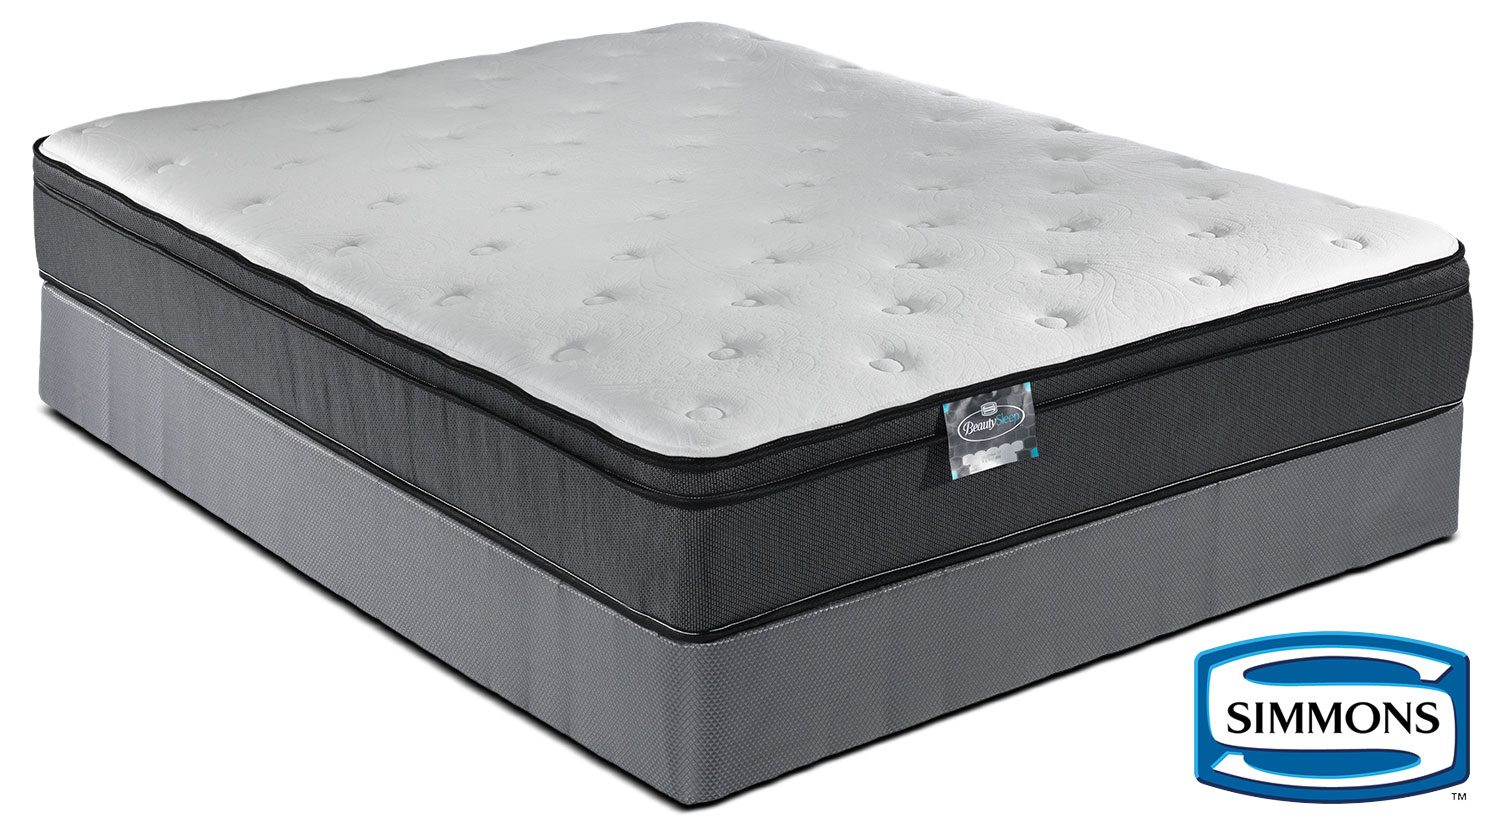 Simmons BeautySleep Jenna Firm Queen Mattress and Boxspring Set